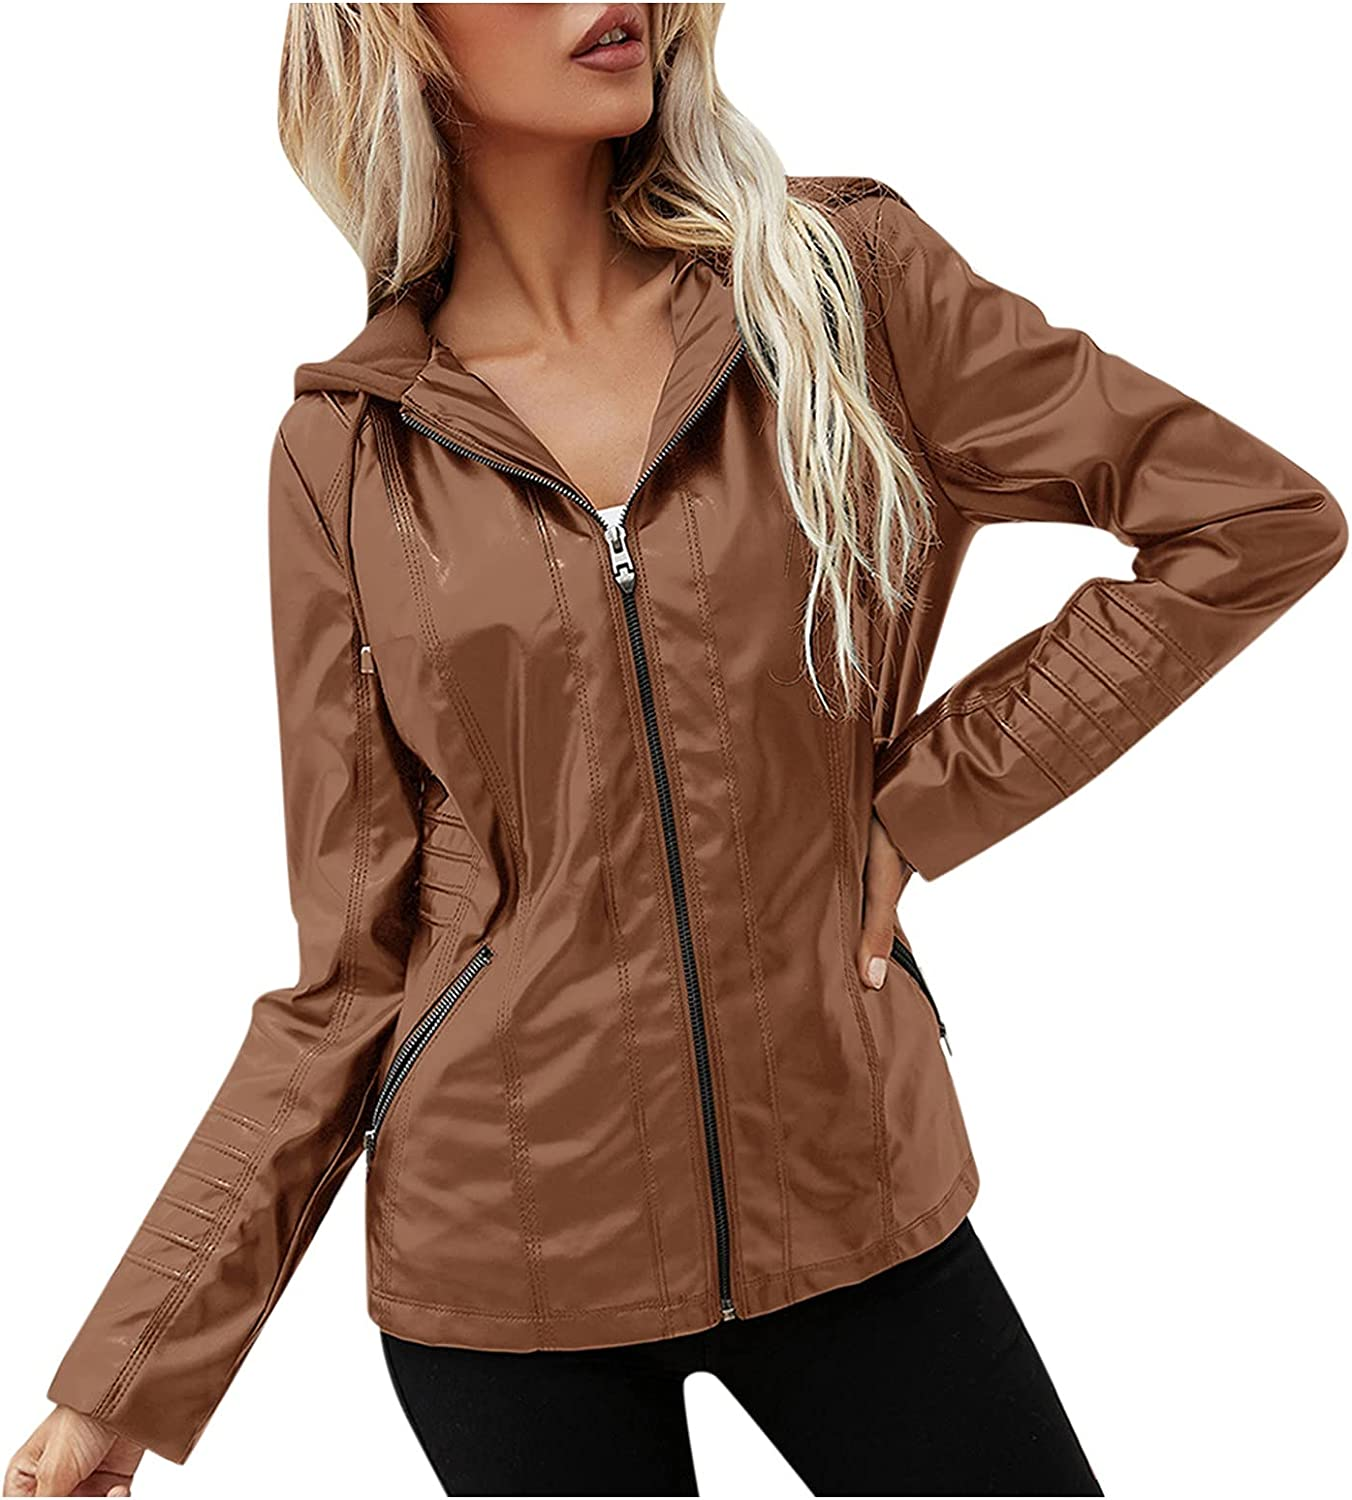 Pinkpaopao Women Casual Fall Hoodie Jacket Leather Zipper Pocket Drawstring Hooded Neck Outwear Solid Color Coat